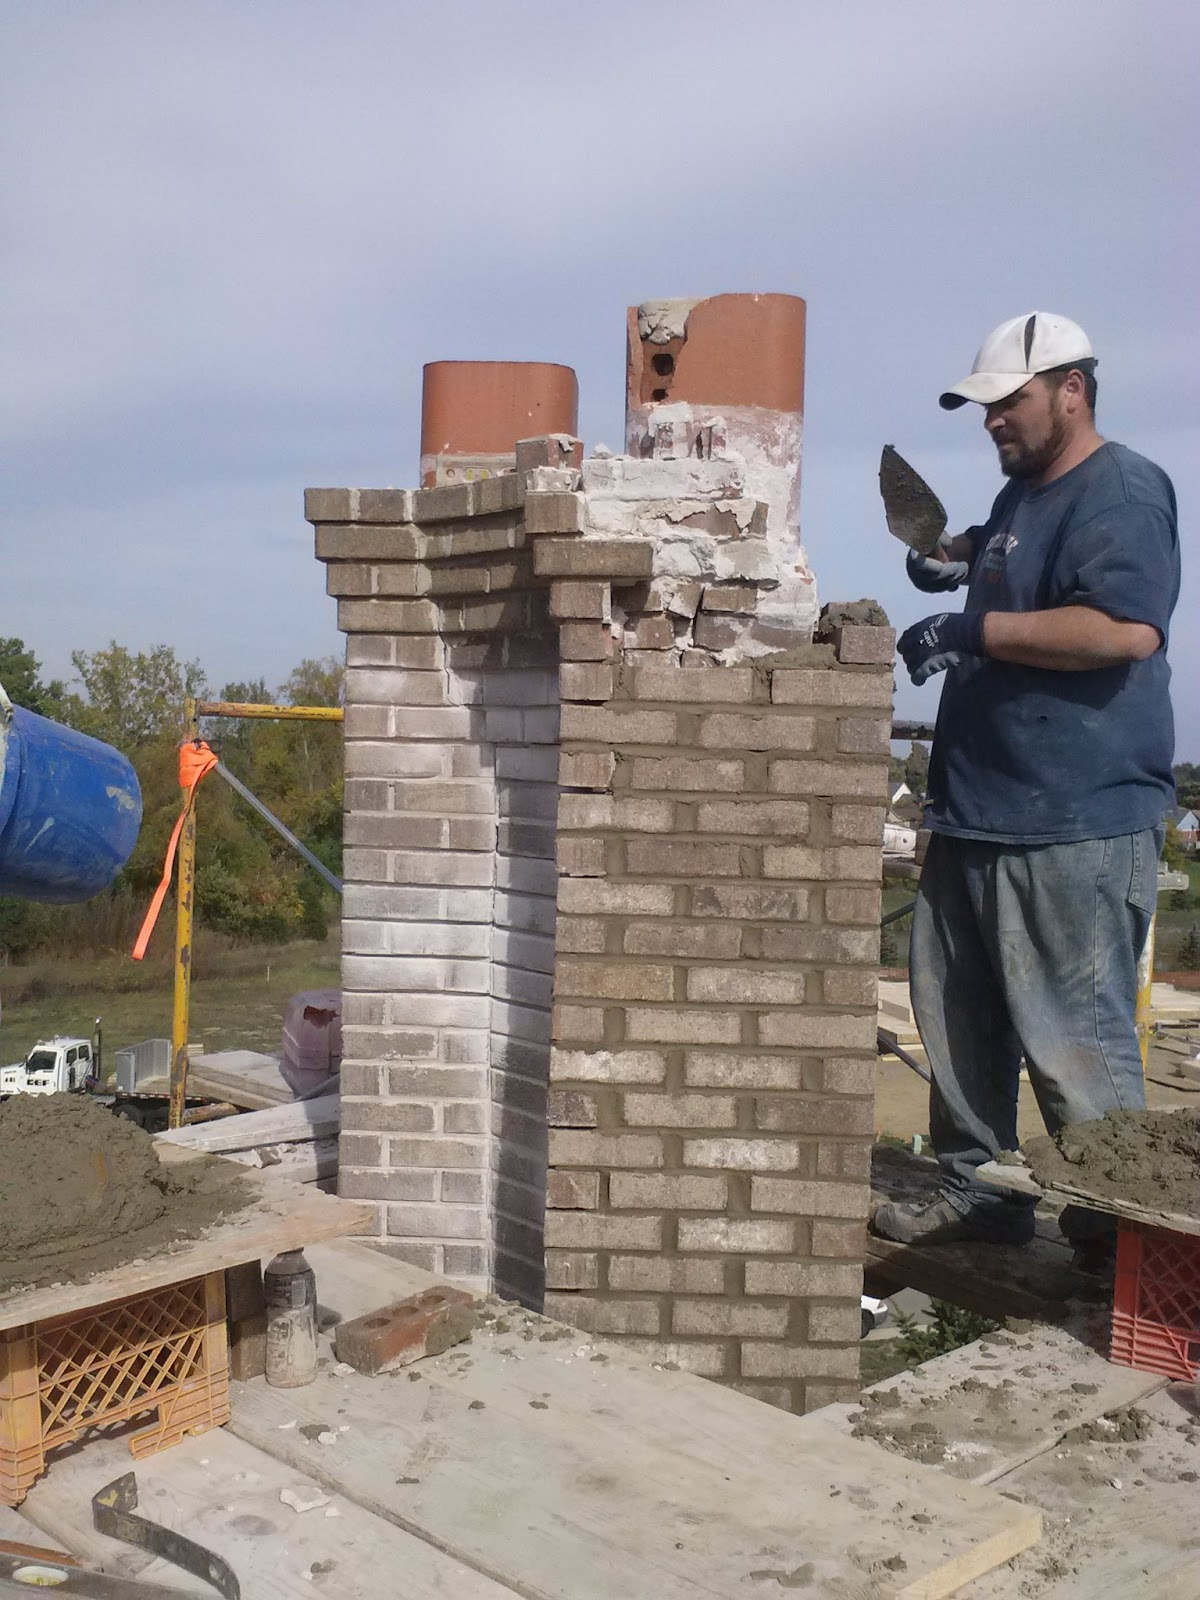 Fireplace Repair Troy Mi West Bloomfield Chimney Repair 248 202 5740